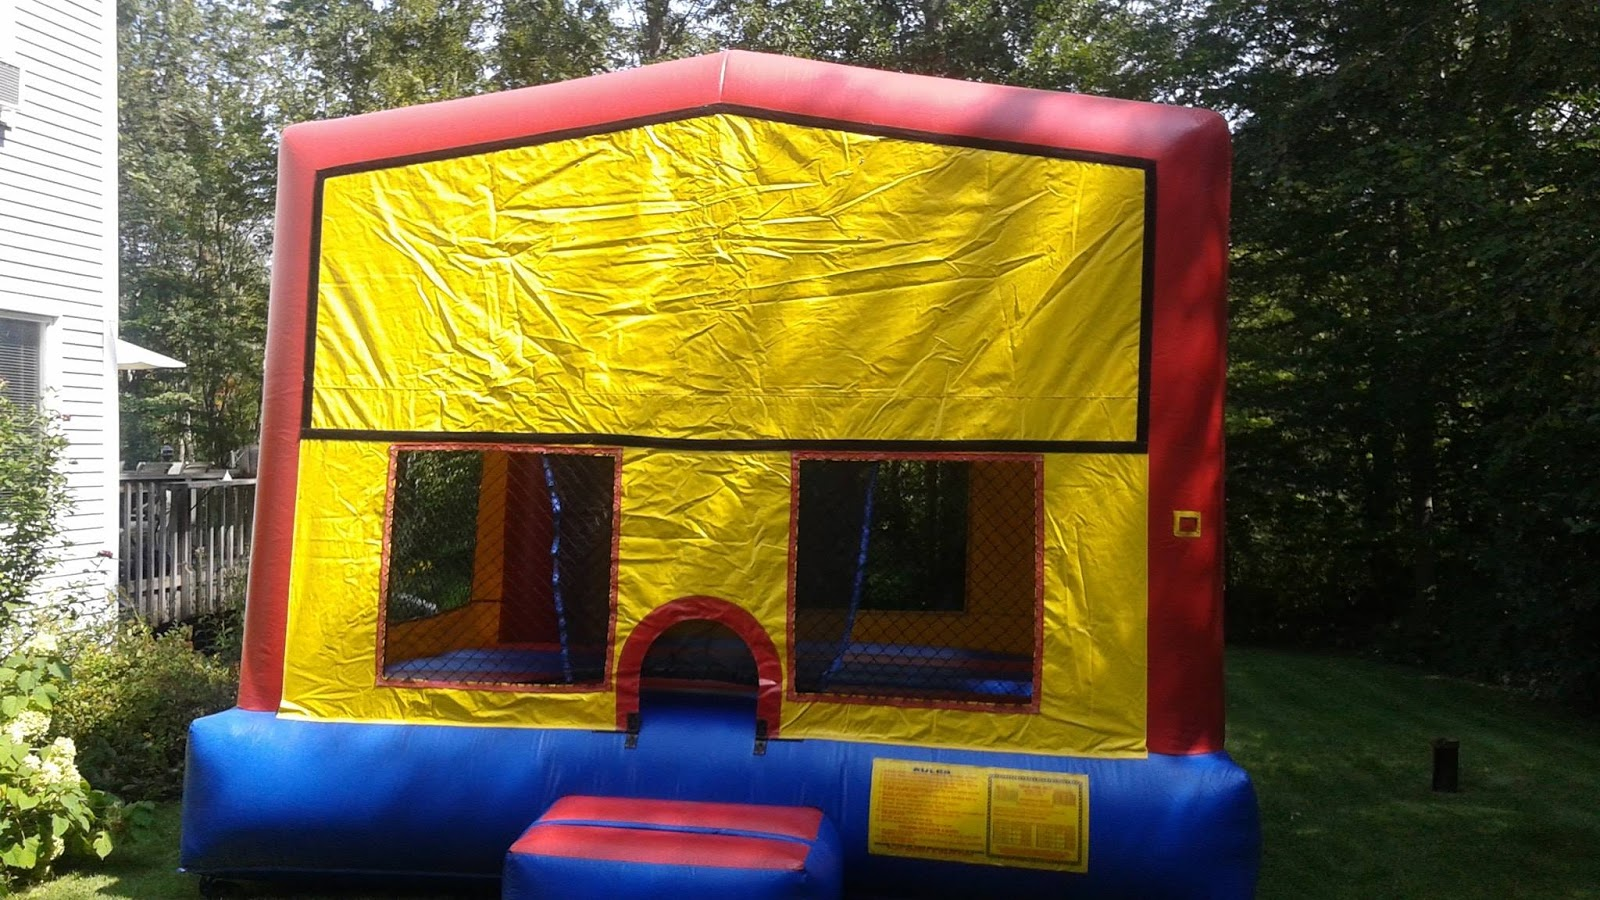 Pleasing Large Modular Bounce House Pete And Chris Amusements Home Interior And Landscaping Ferensignezvosmurscom